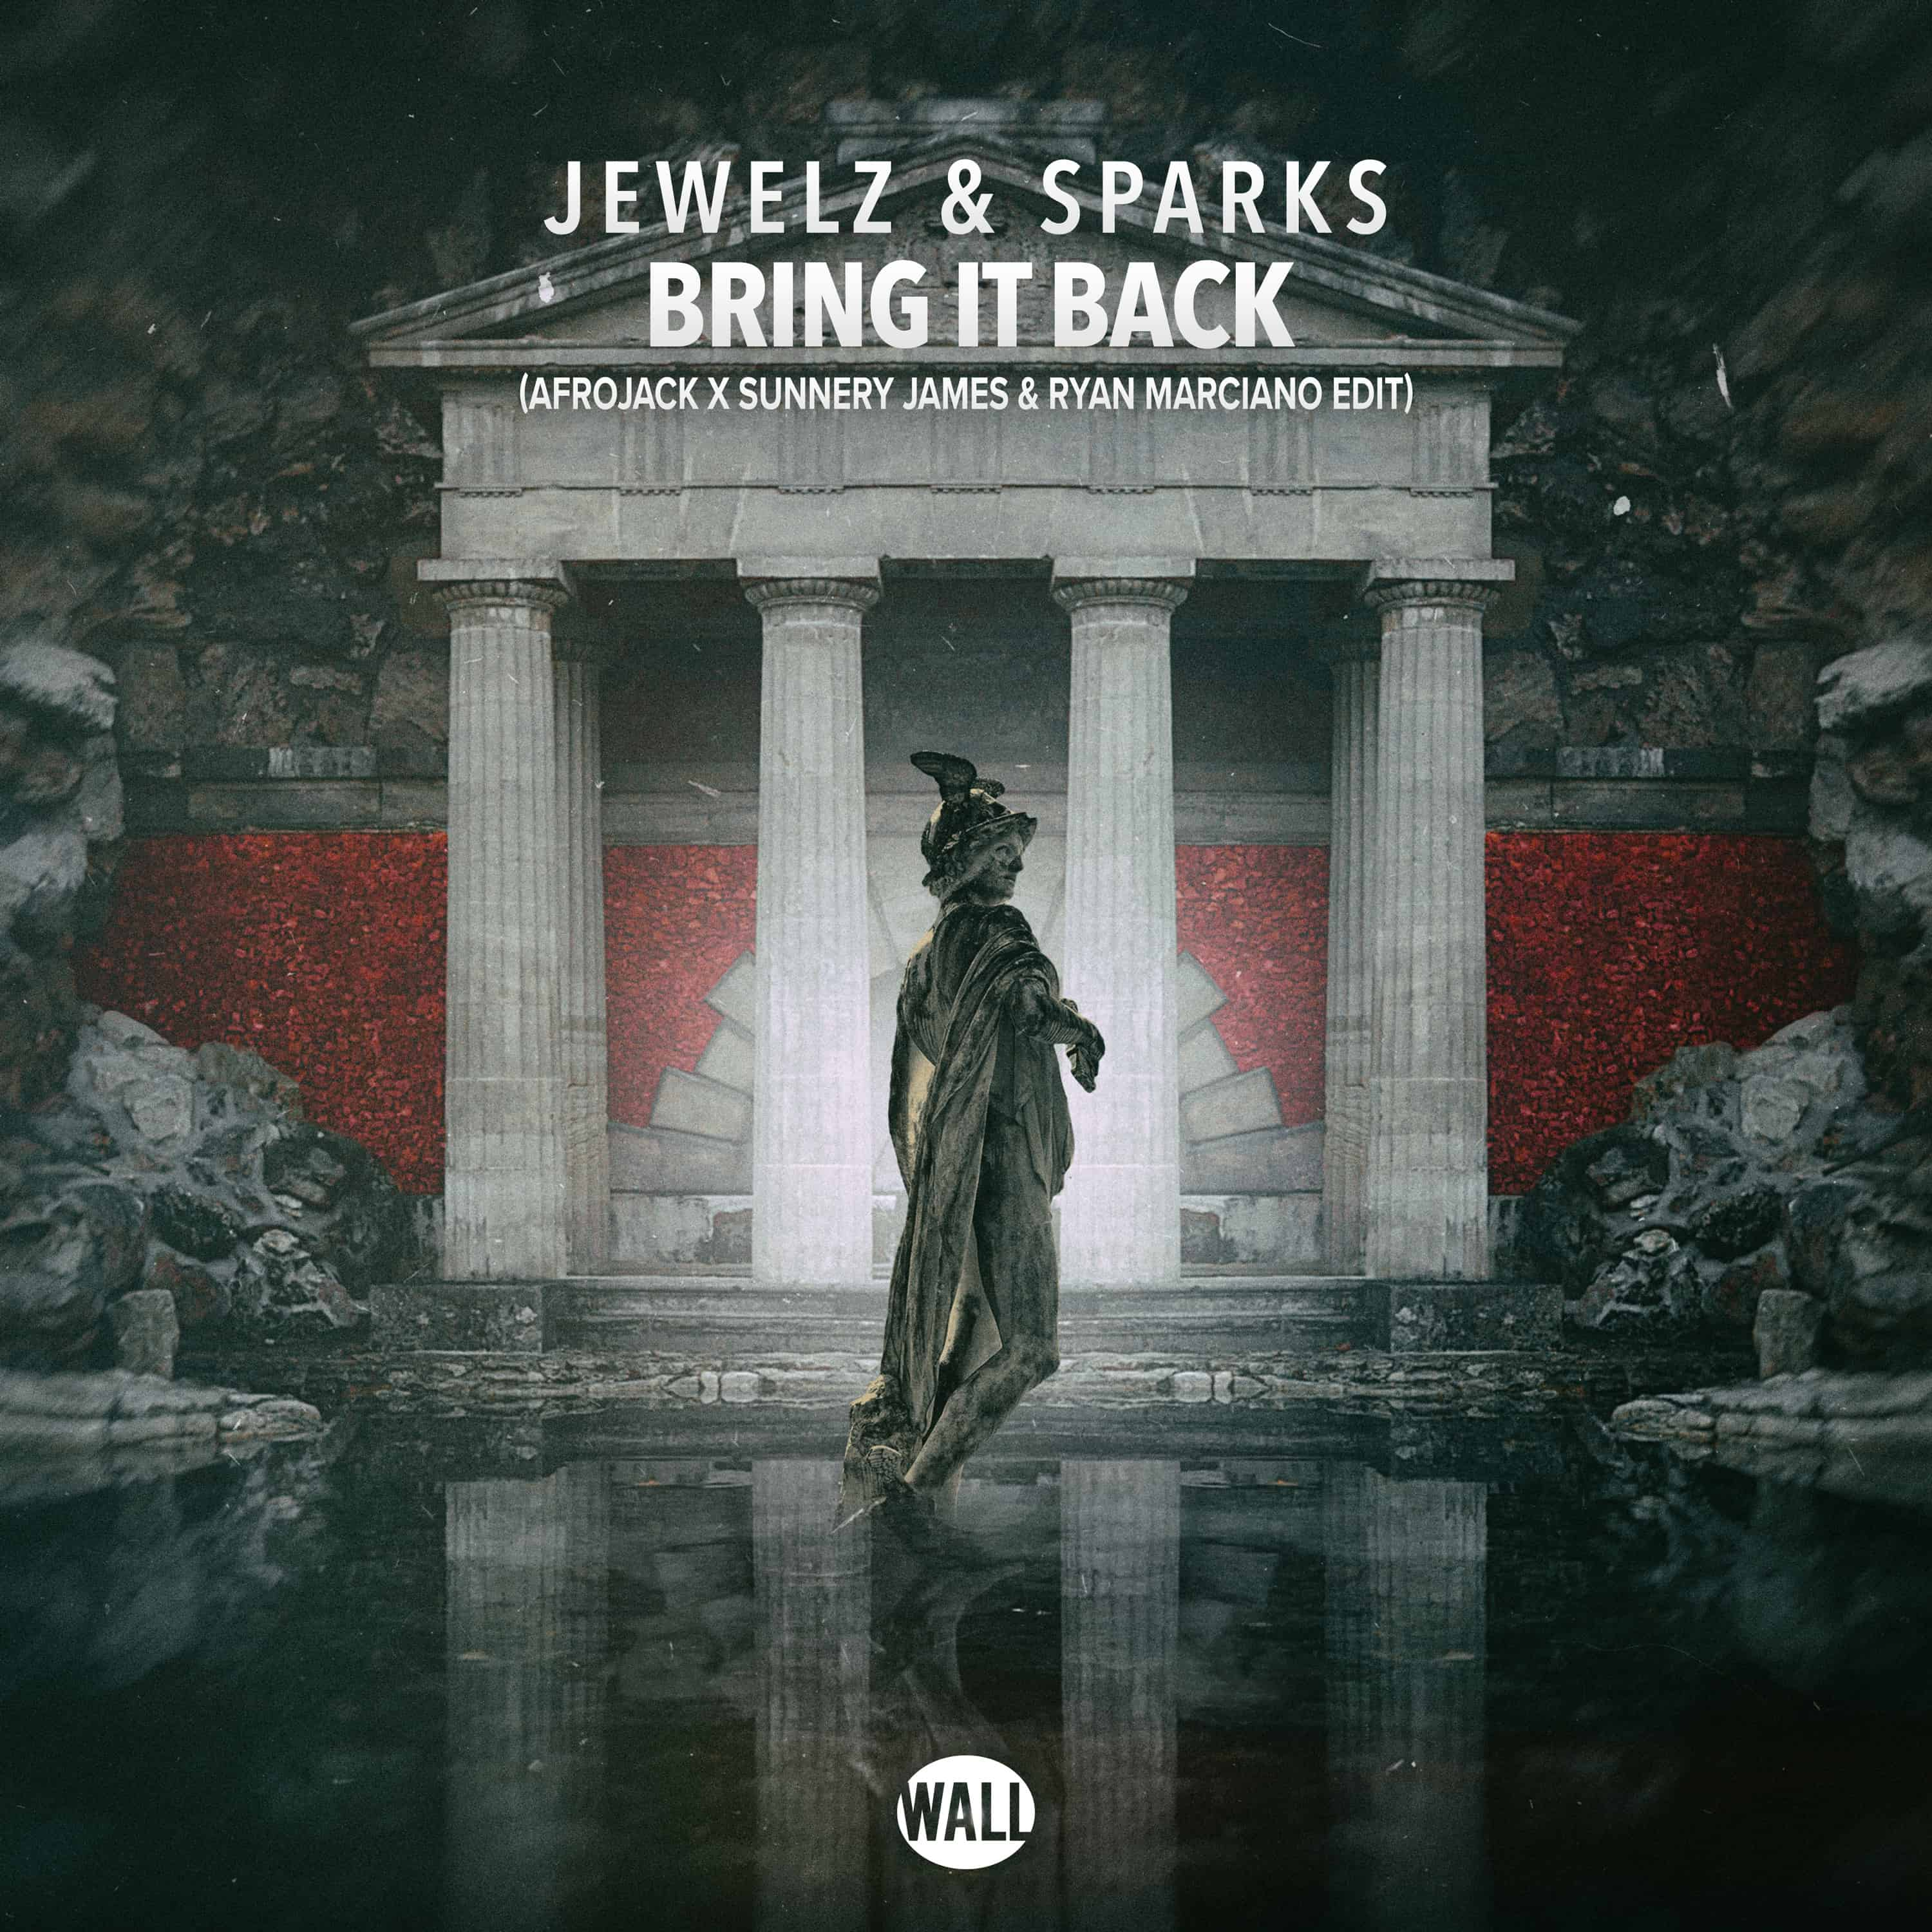 Afrojack and Sunnery James & Ryan Marciano team-up for massive club edit of Jewelz & Sparks track